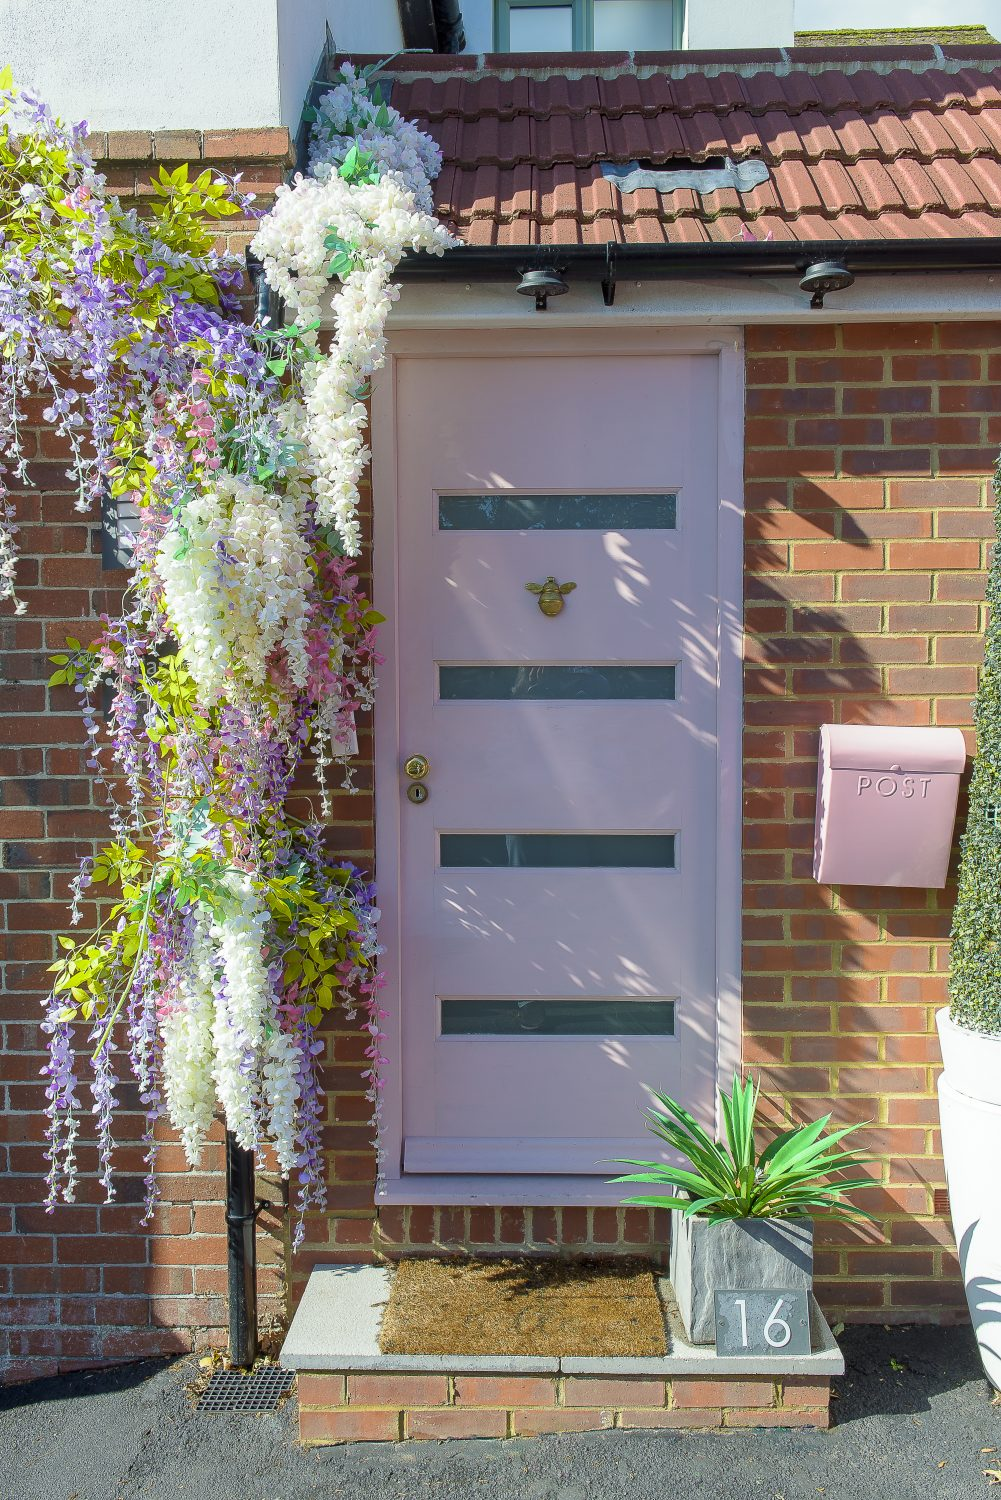 Right: Even the front door, with its brass bumblebee knocker, has been given the powder pink treatment, festooned with faux wisteria